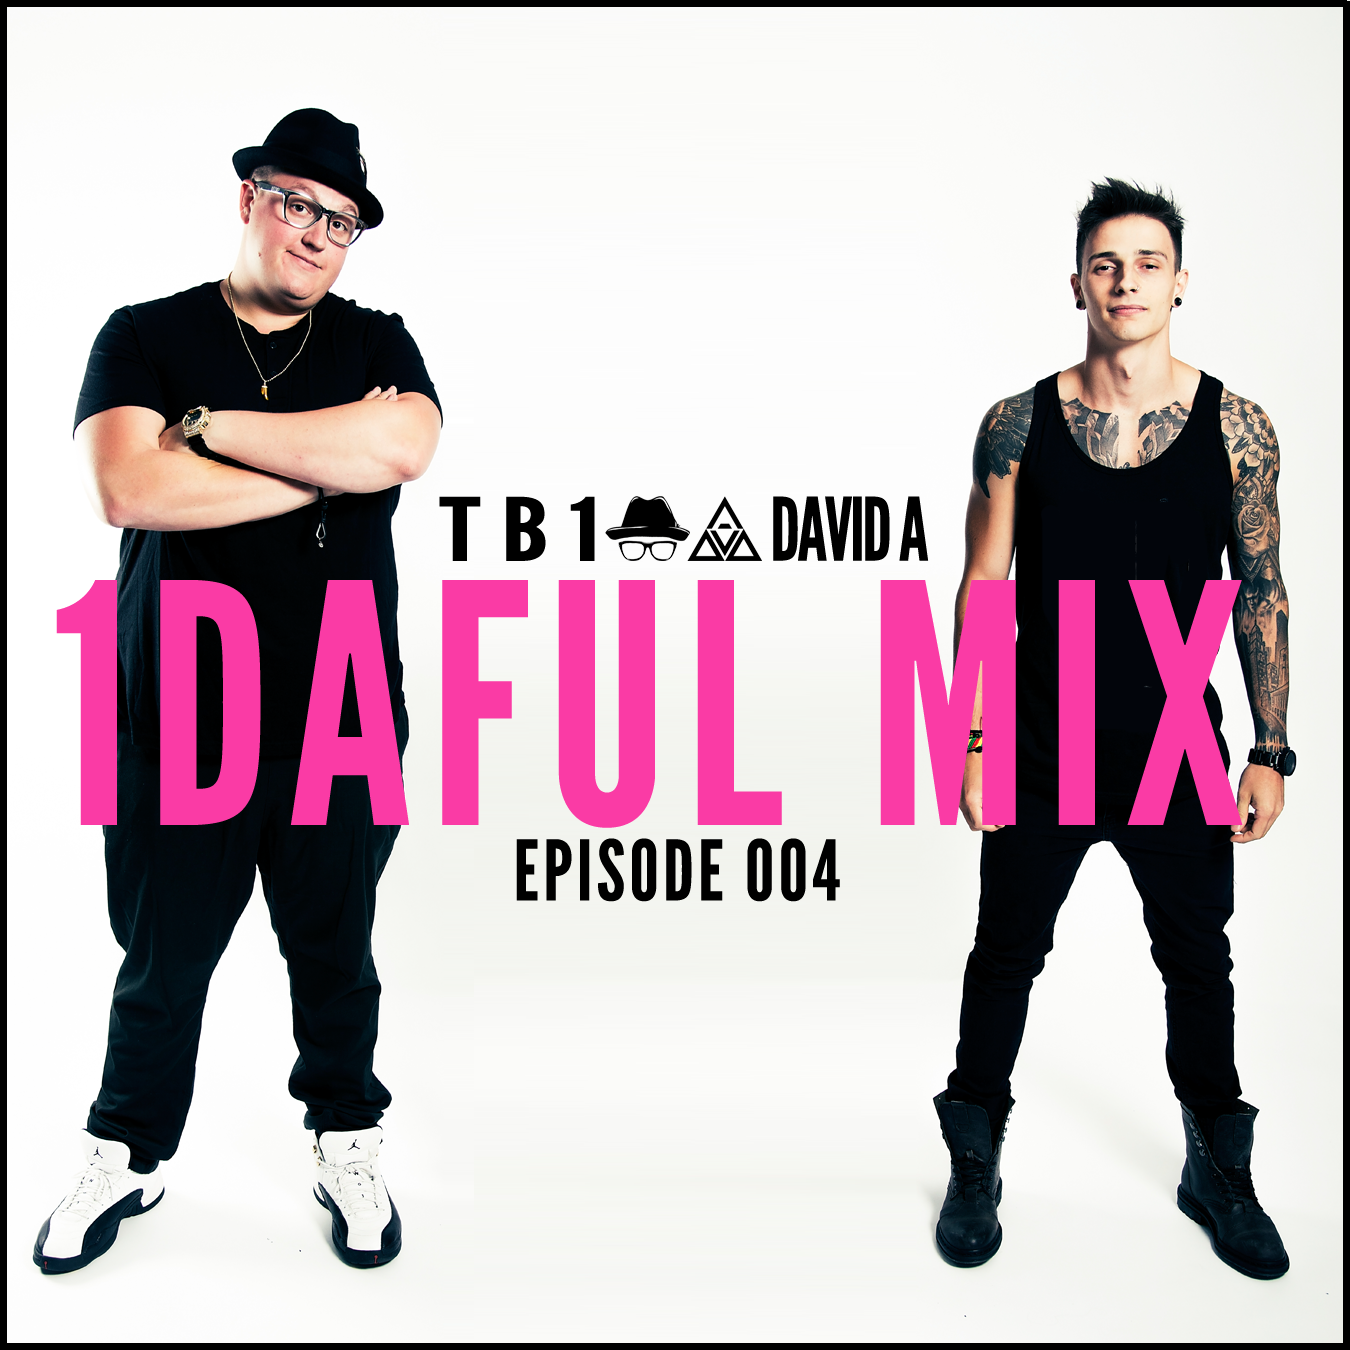 1DAFUL Mix - 004 - TB1 and David A